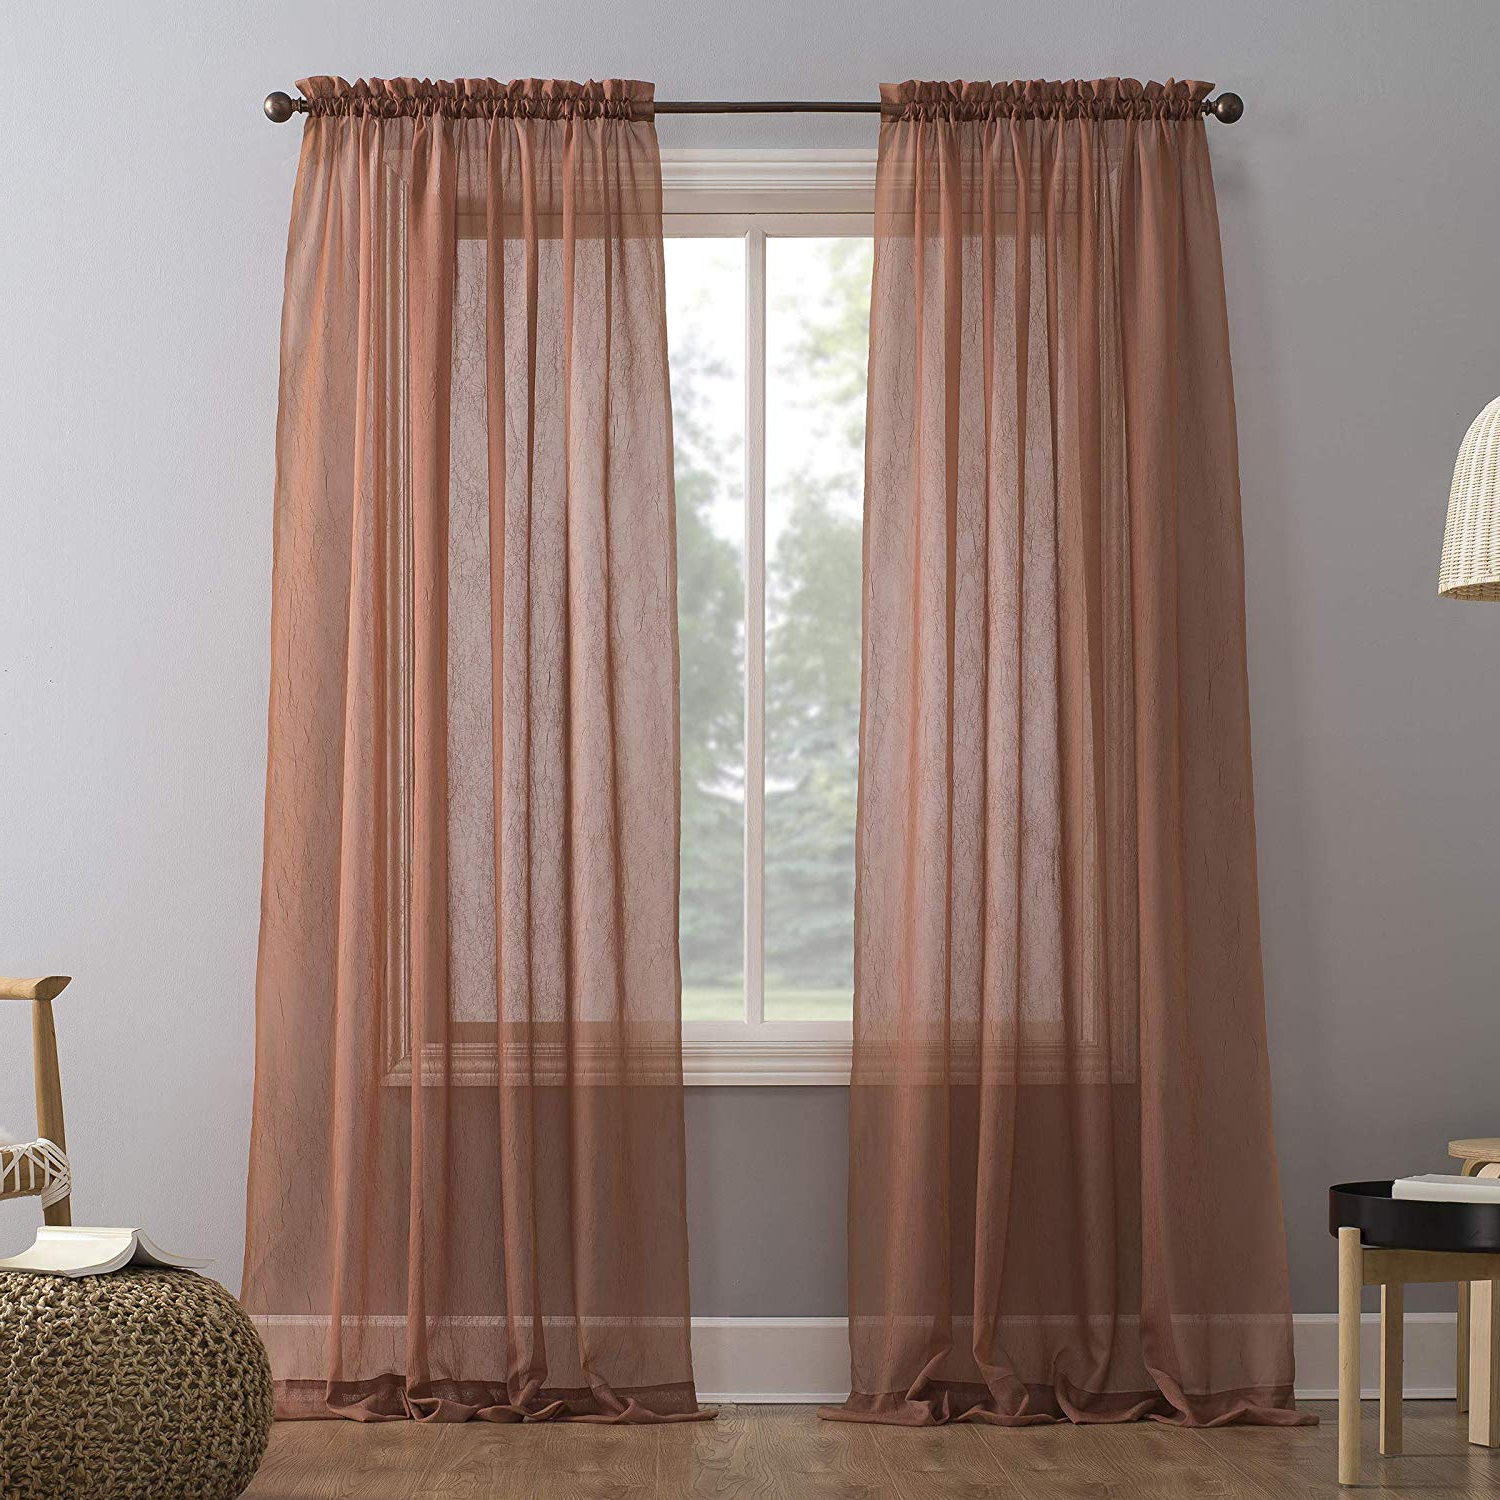 """Erica Sheer Crushed Voile Single Curtain Panels Intended For 2020 No. 918 Erica Crushed Voile Sheer Rod Pocket Curtain Panel, 51"""" X 84"""", Fig (Gallery 5 of 20)"""